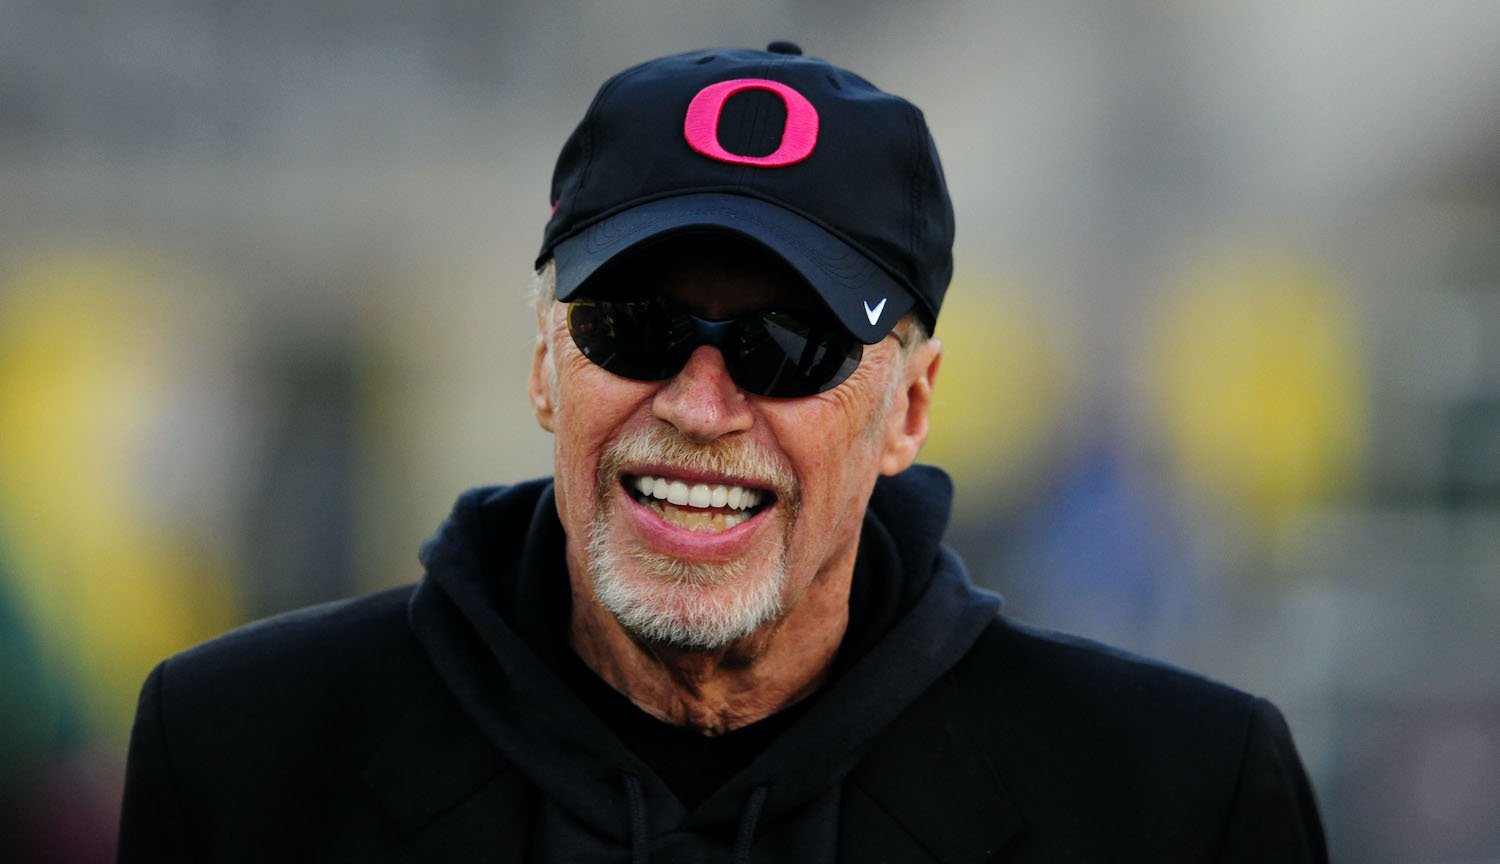 Phil Knight sold running shoes out of the trunk of his car before founding Nike and building an enormous net worth.